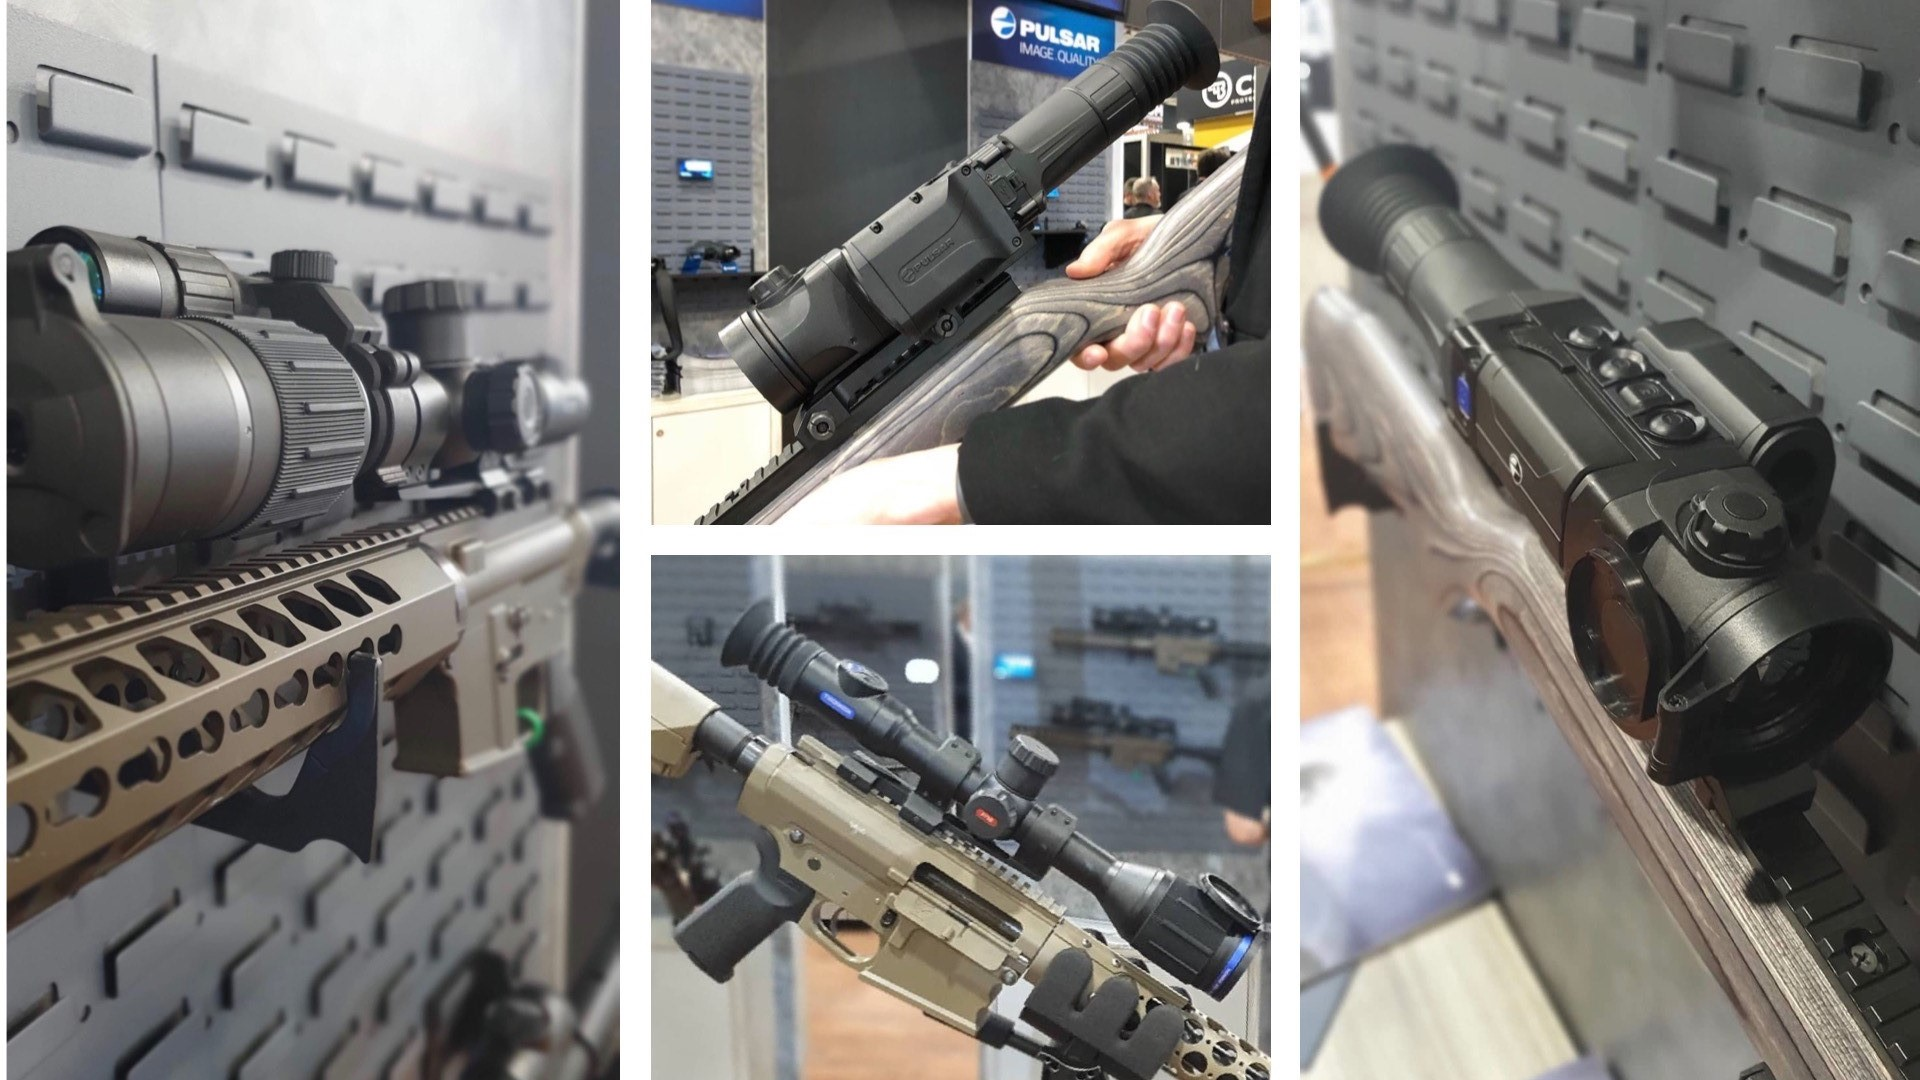 News from ShotShow 2020